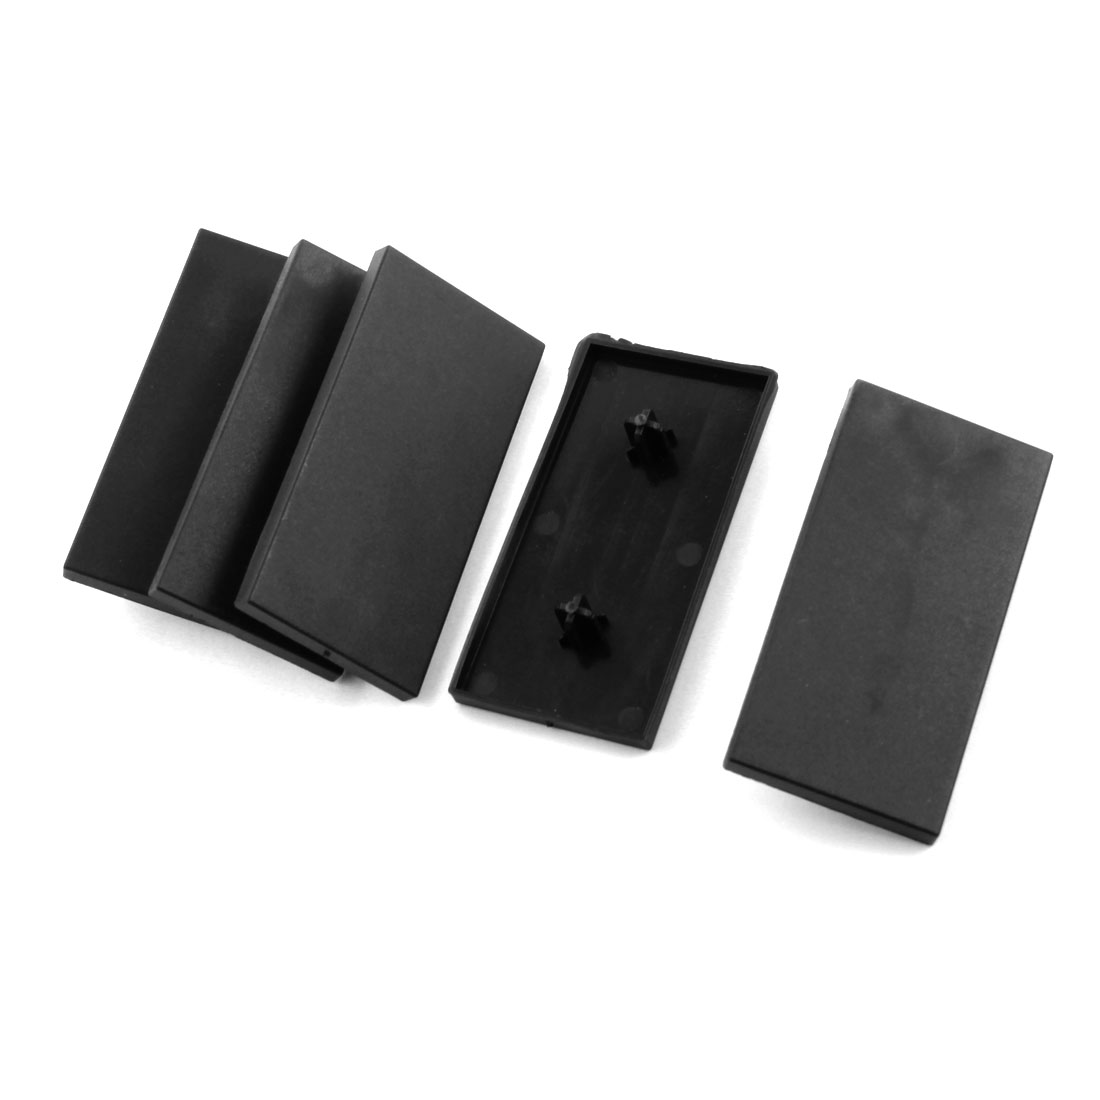 5Pcs Black Rectangle Extrusion End Cover for 80mm x 40mm T-Slot Aluminum Profile